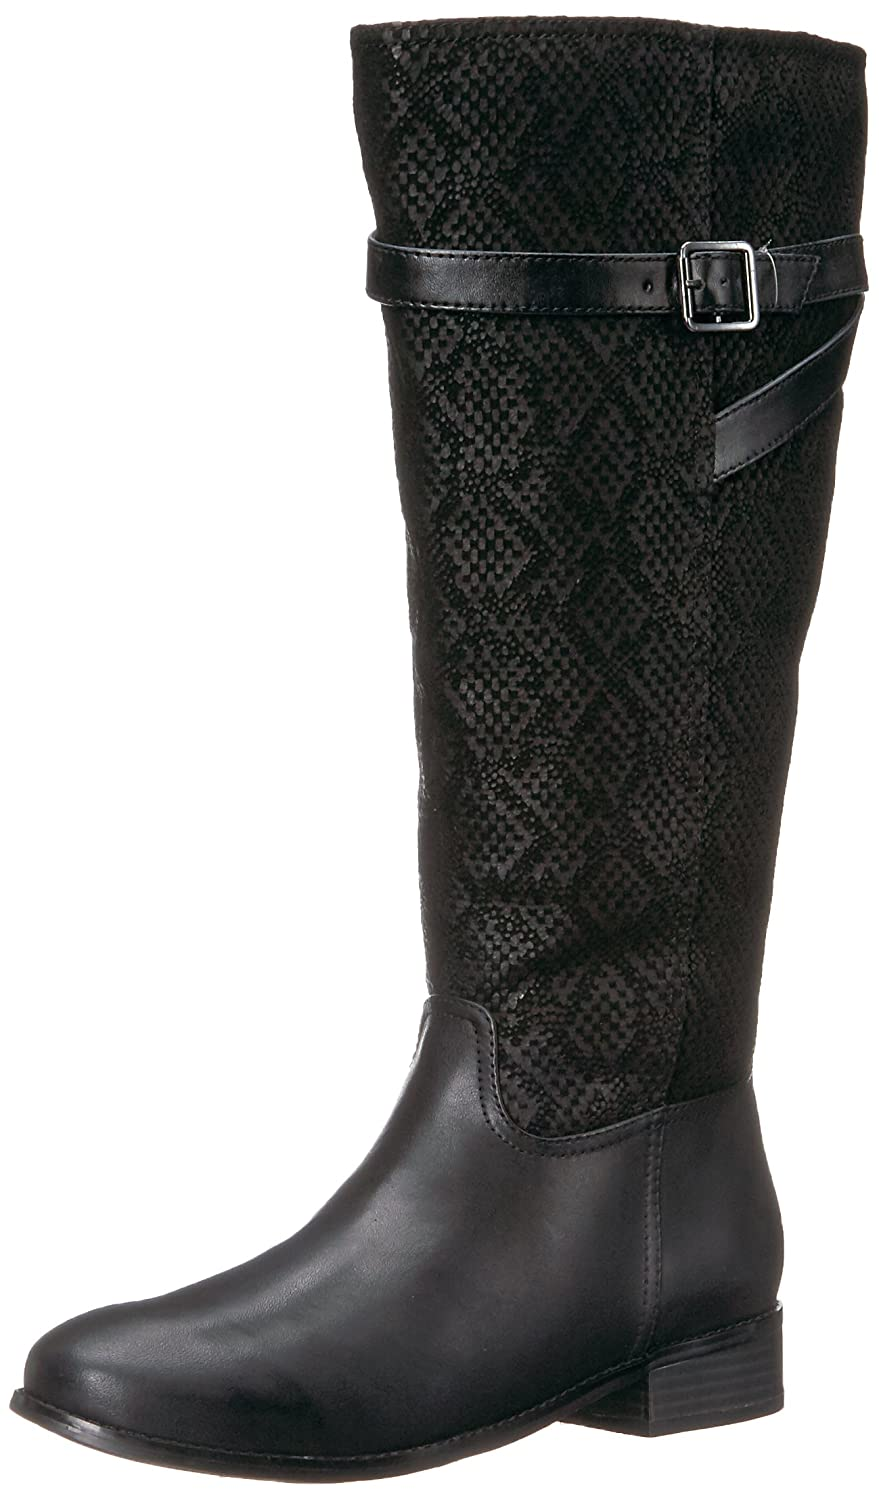 Trotters Women's Lyra Wide Calf Riding Boot B01NGYMUPH 5.5 B(M) US|Black